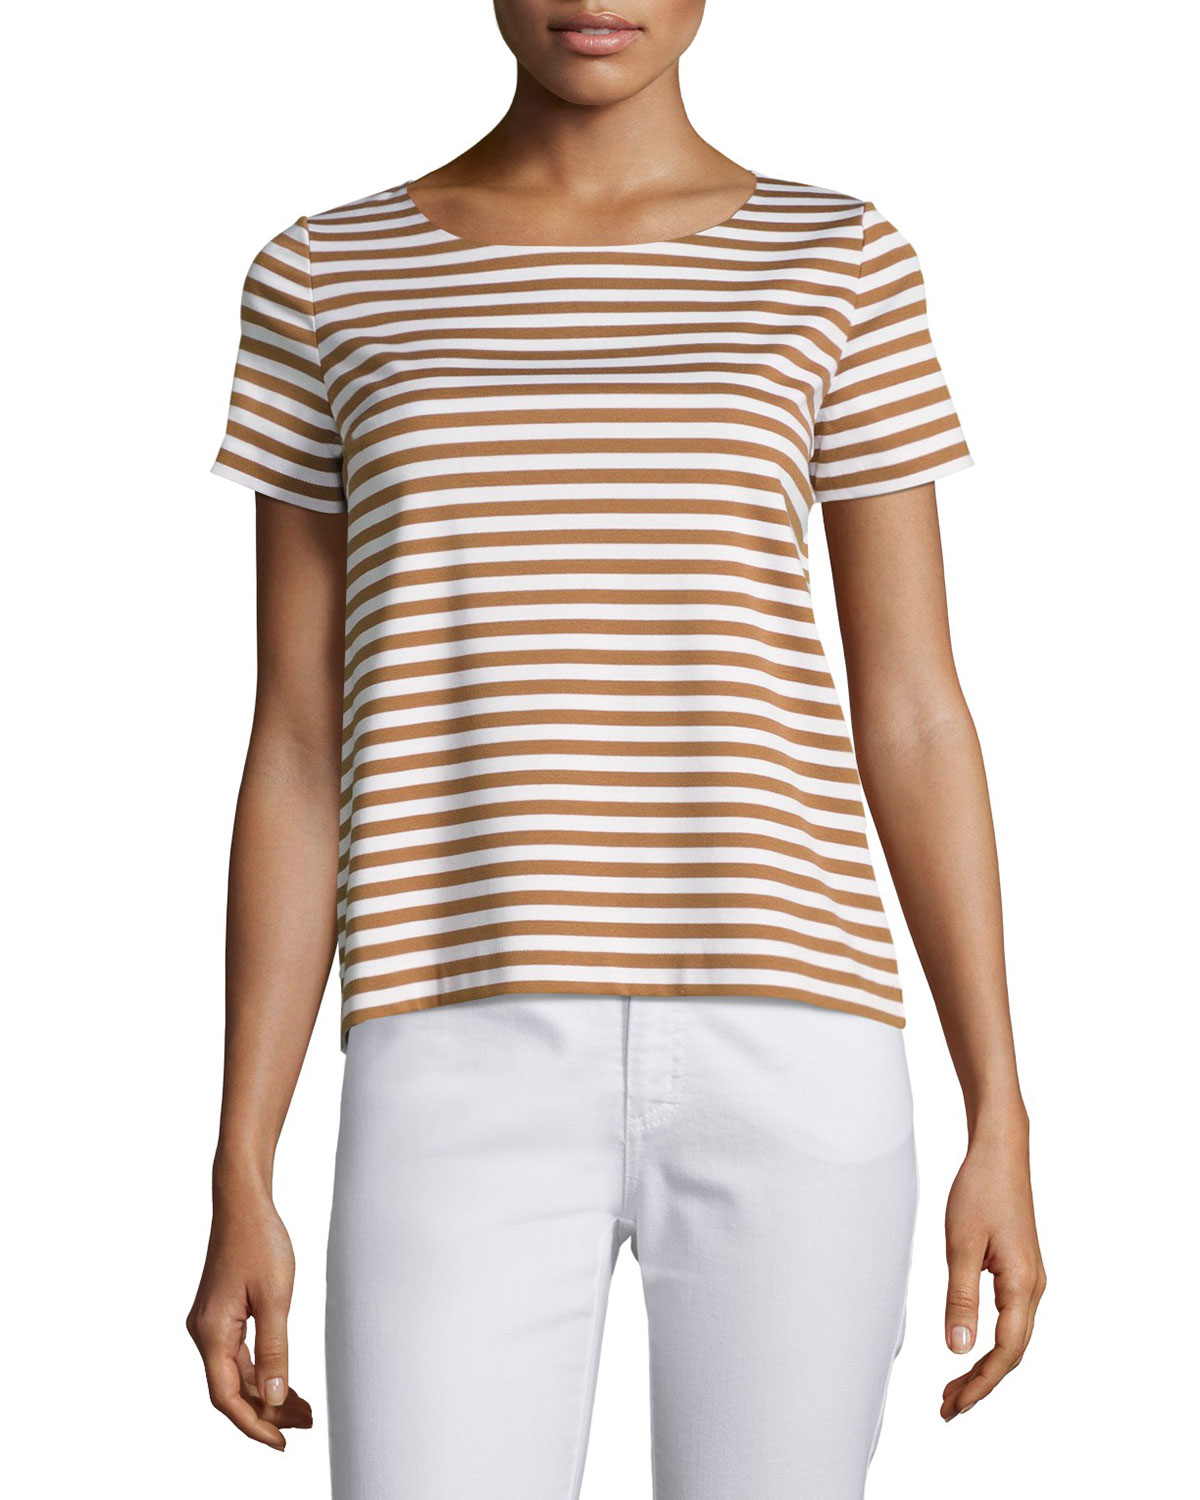 Short-Sleeve Striped Tee, Plus Size